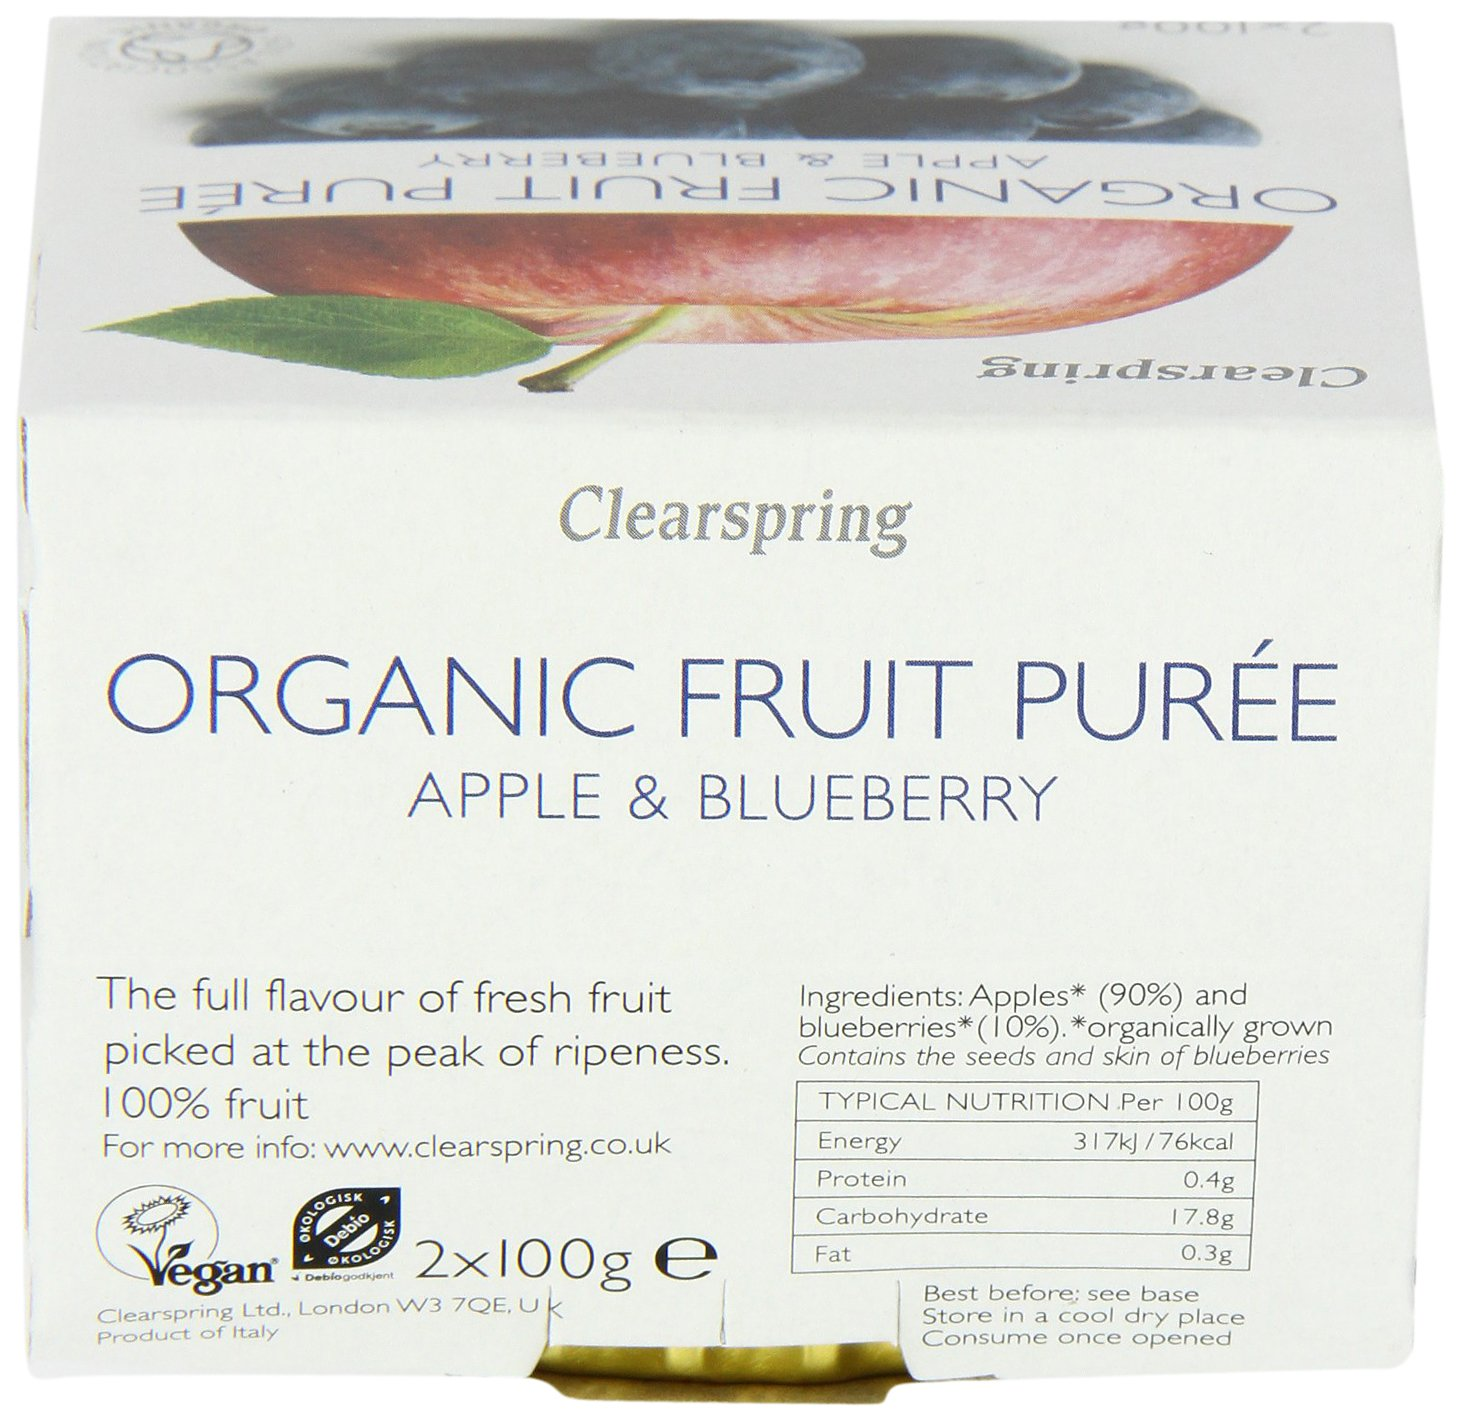 Clearspring Organic Apple and Blueberry Fruit Puree 2x100 g (Pack of 12)